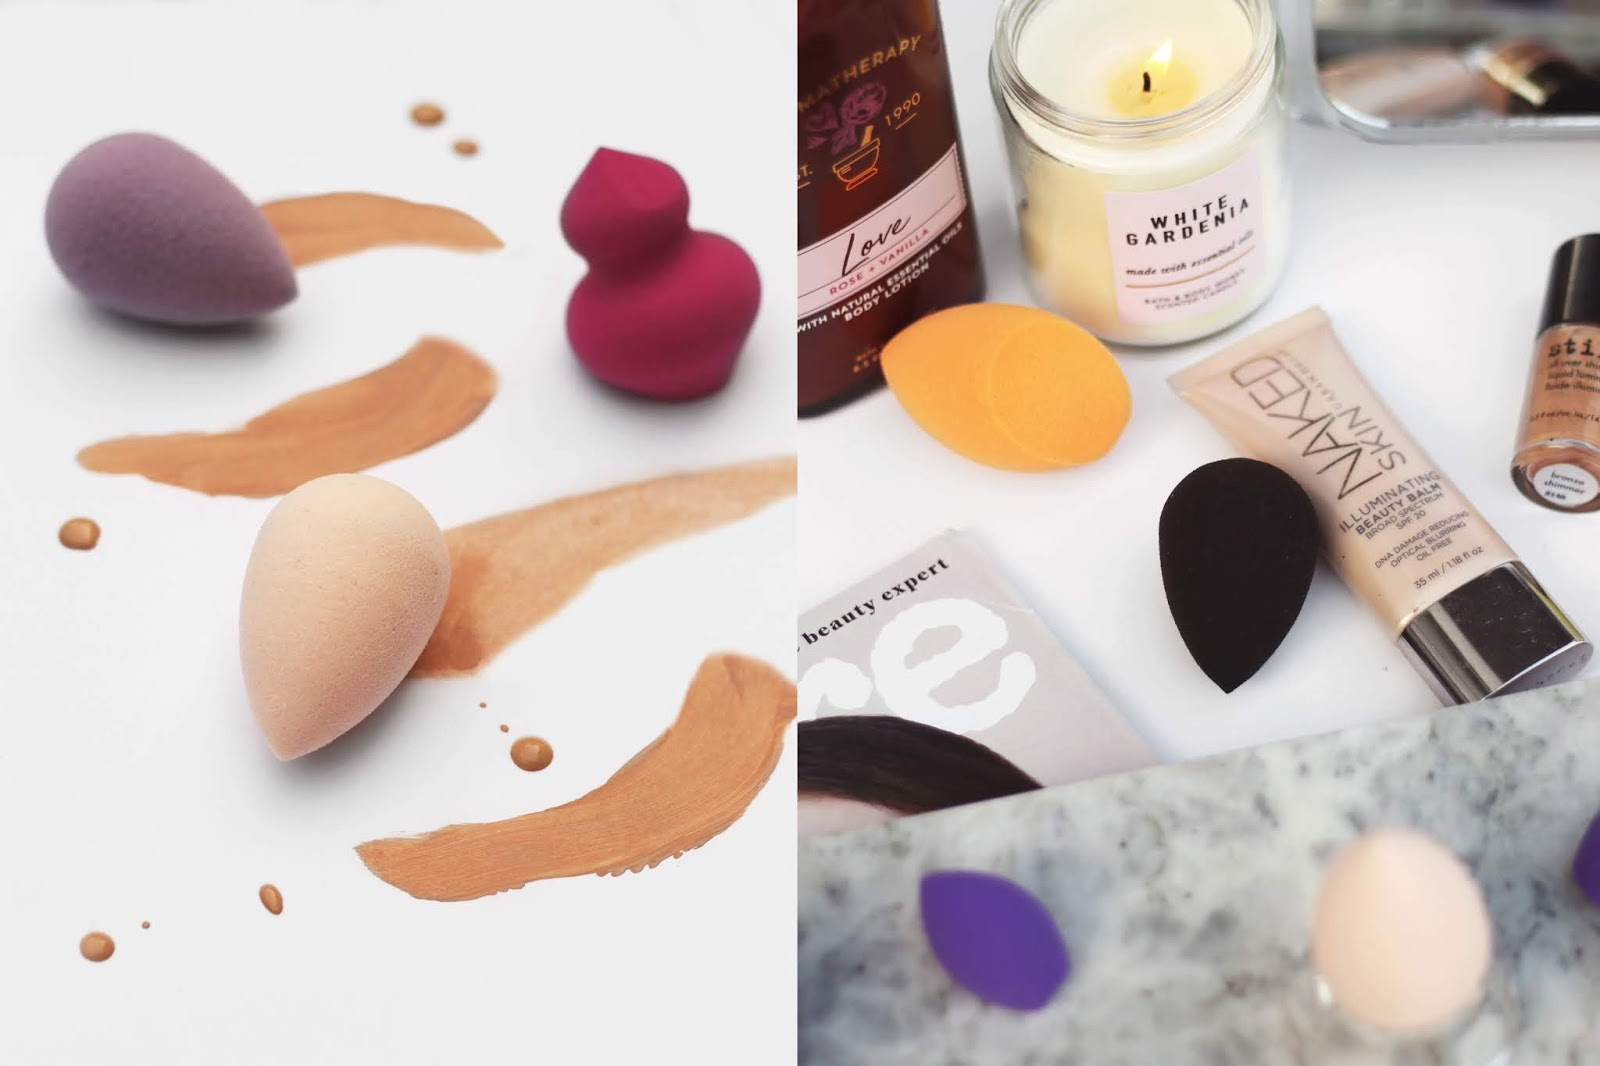 makeup sponges with makeup swatches, makeup sponge application, makeup sponges, makeup flatlay, beautyblender with cheaper alternatives, beauty comparisons, beauty blogger